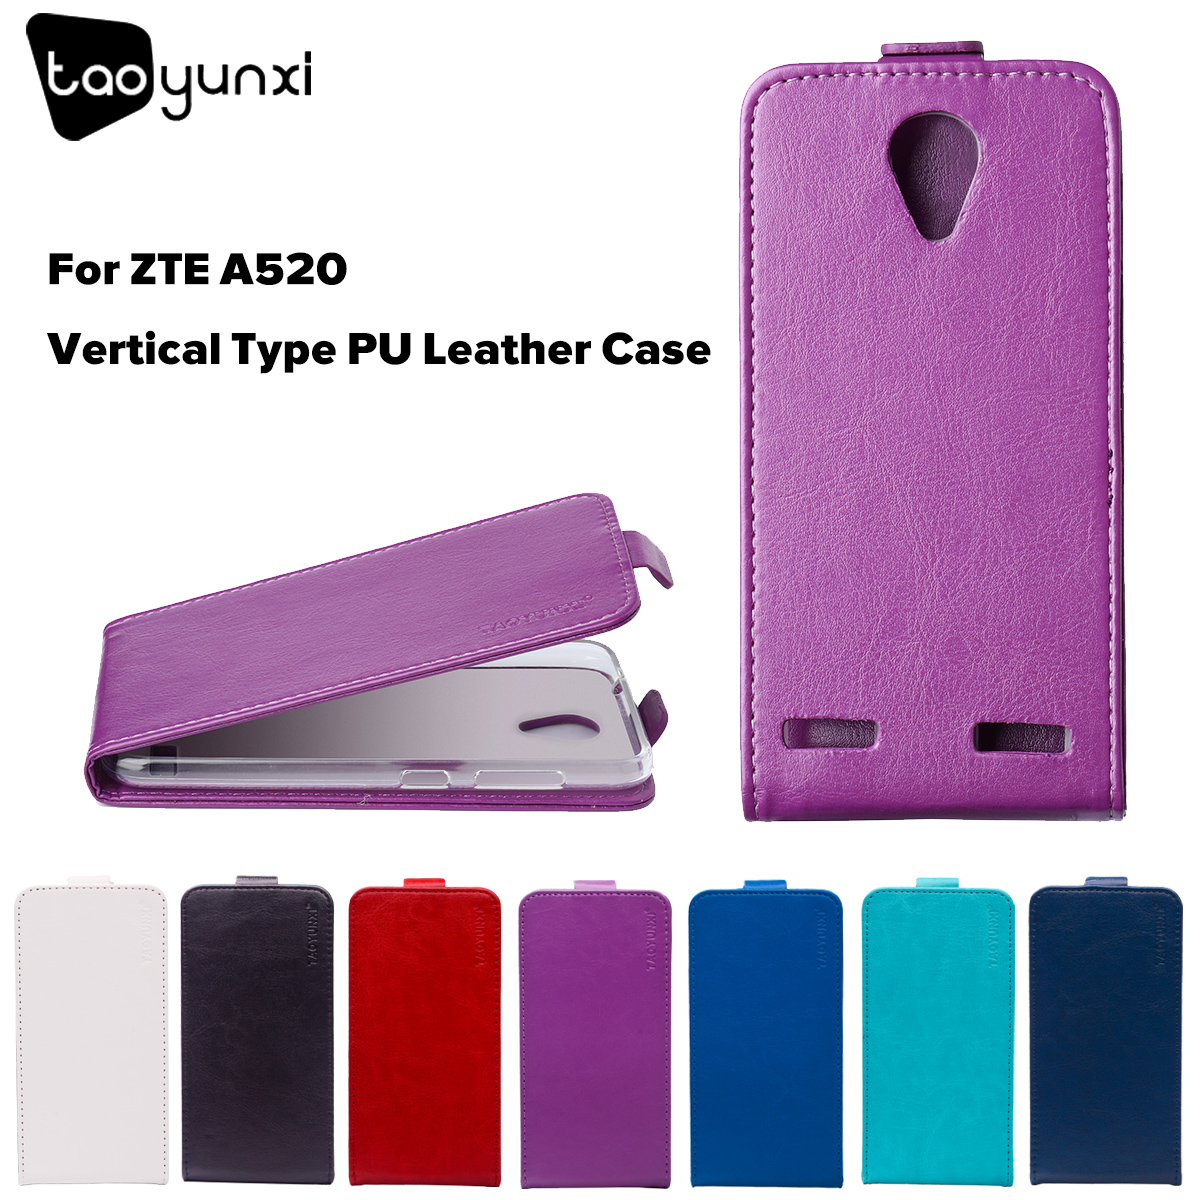 TAOYUNXI Flip Phone Case Cover For ZTE Blade A520 A 520 BA520 5.0 inch Cover TPU PU Leather Case Magnetic Mobile Phone Housing